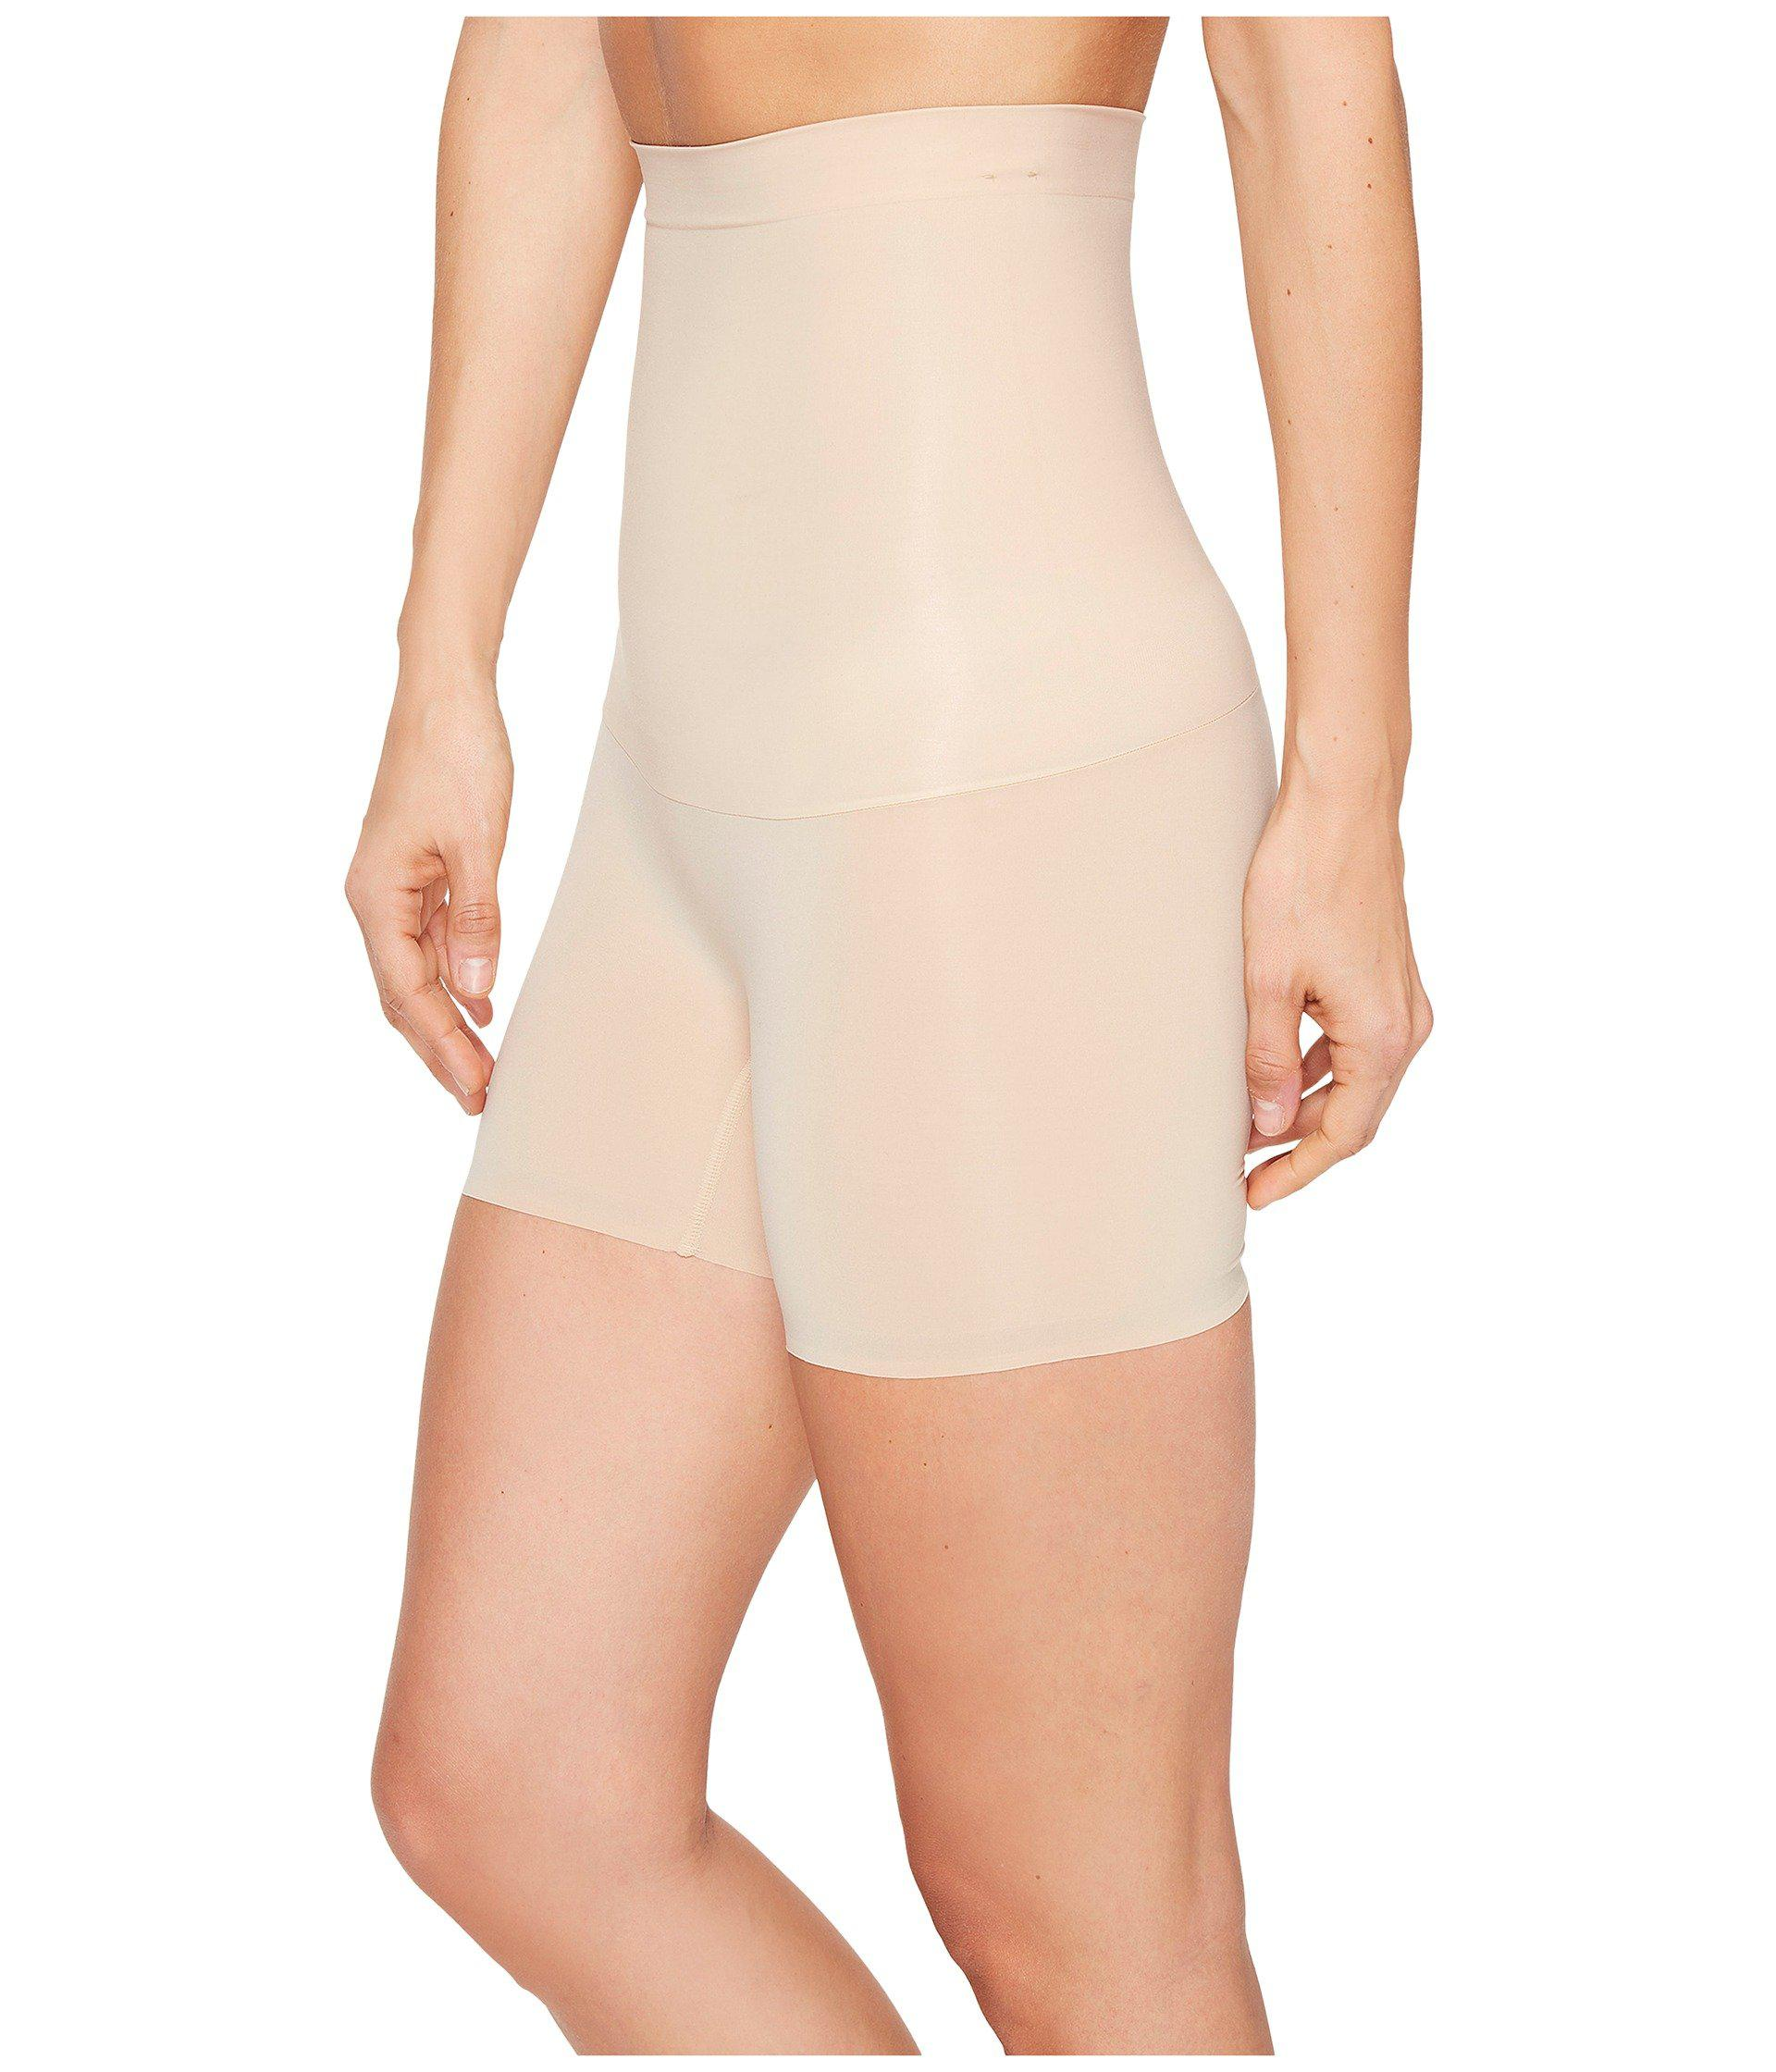 603541b35b1cc Lyst - Spanx Shape My Day High-waisted Girl Short (natural) Women s  Underwear in Natural